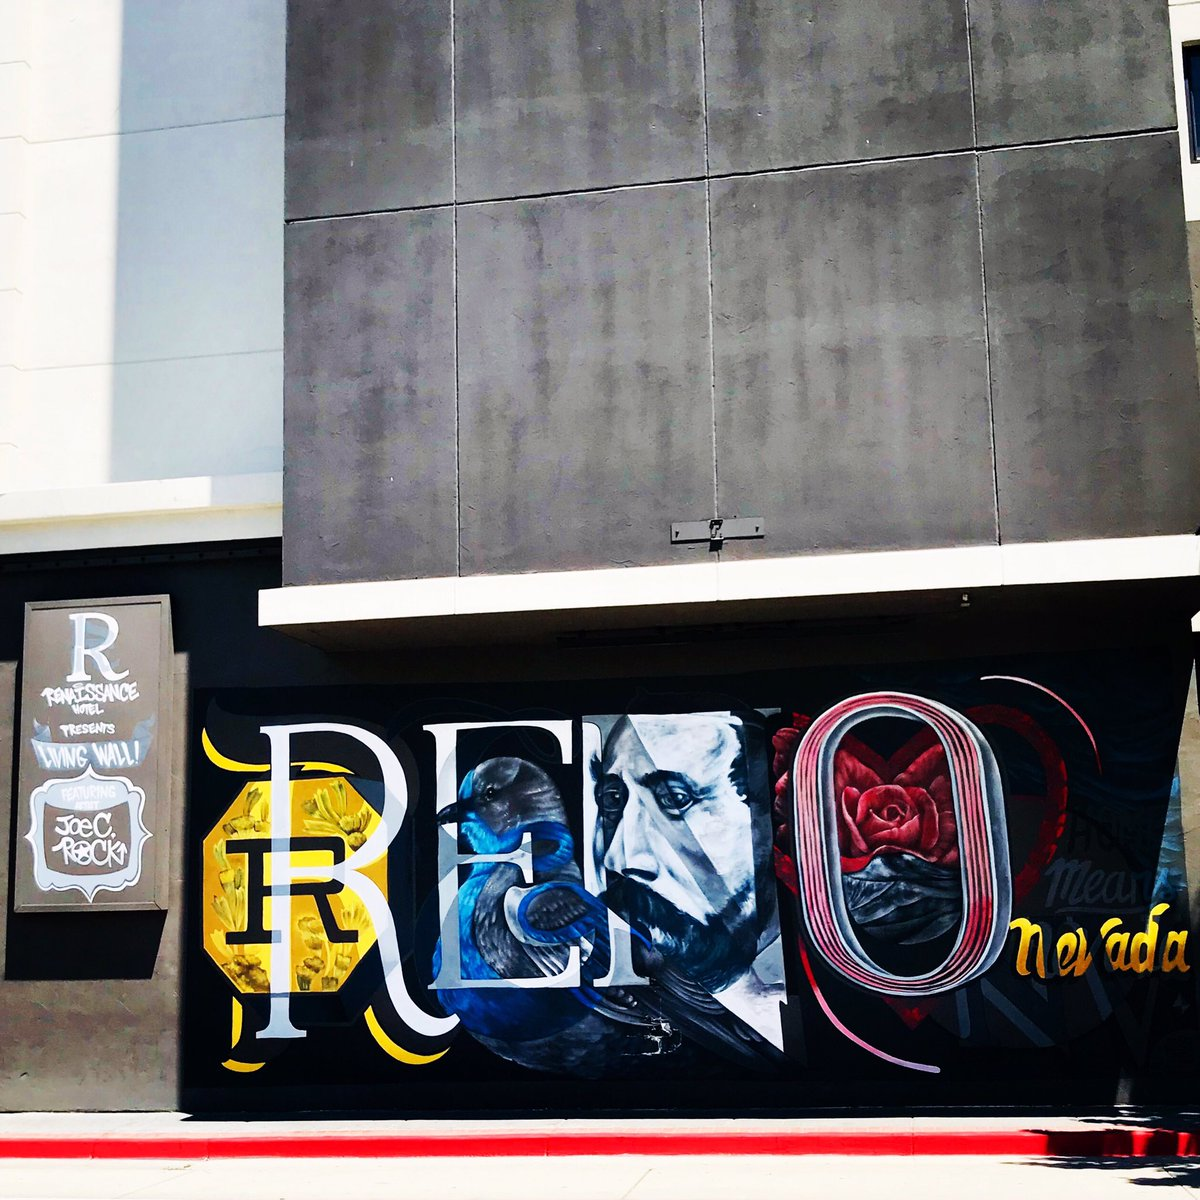 Reno has a wonderful program encouraging artists to create murals throughout the city!  There's barely a blank wall to be seen anywhere!!!  #reno #renoart #mural #yourock #streetart #streetartist #instadaily #graffart #instagraffiti